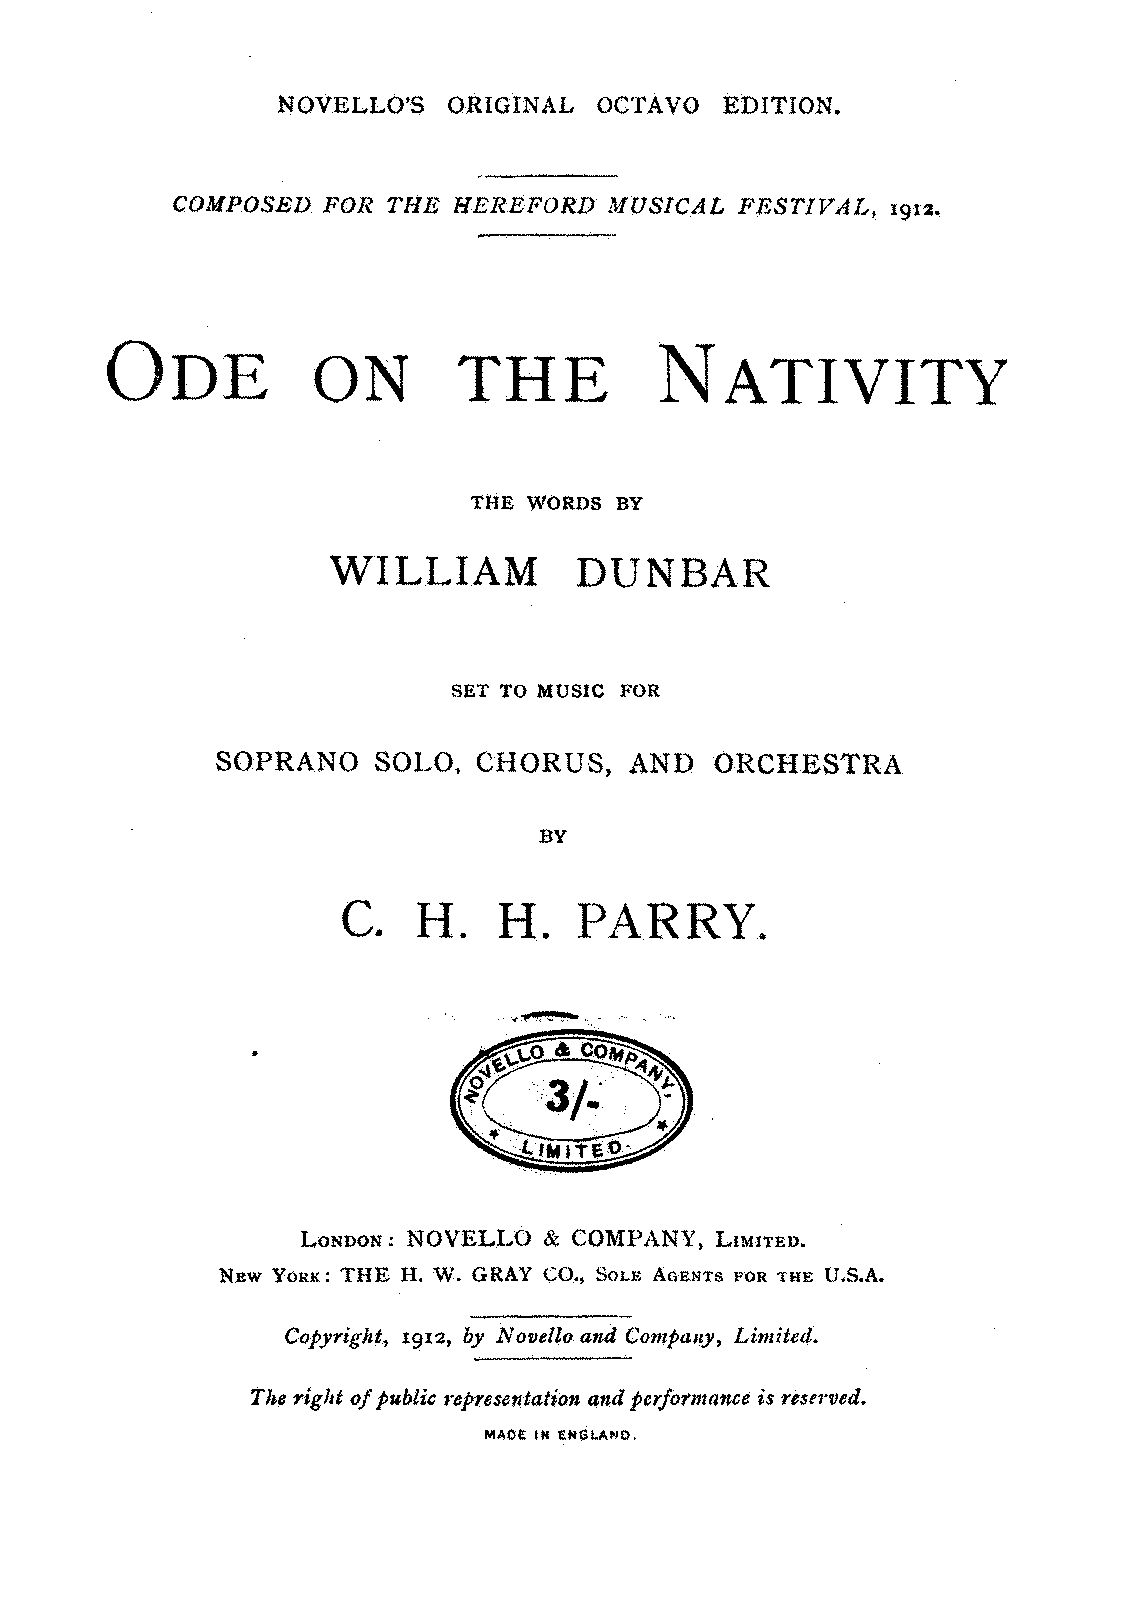 PMLP316581-Parry - Ode on the Nativity, Title and prelims.pdf